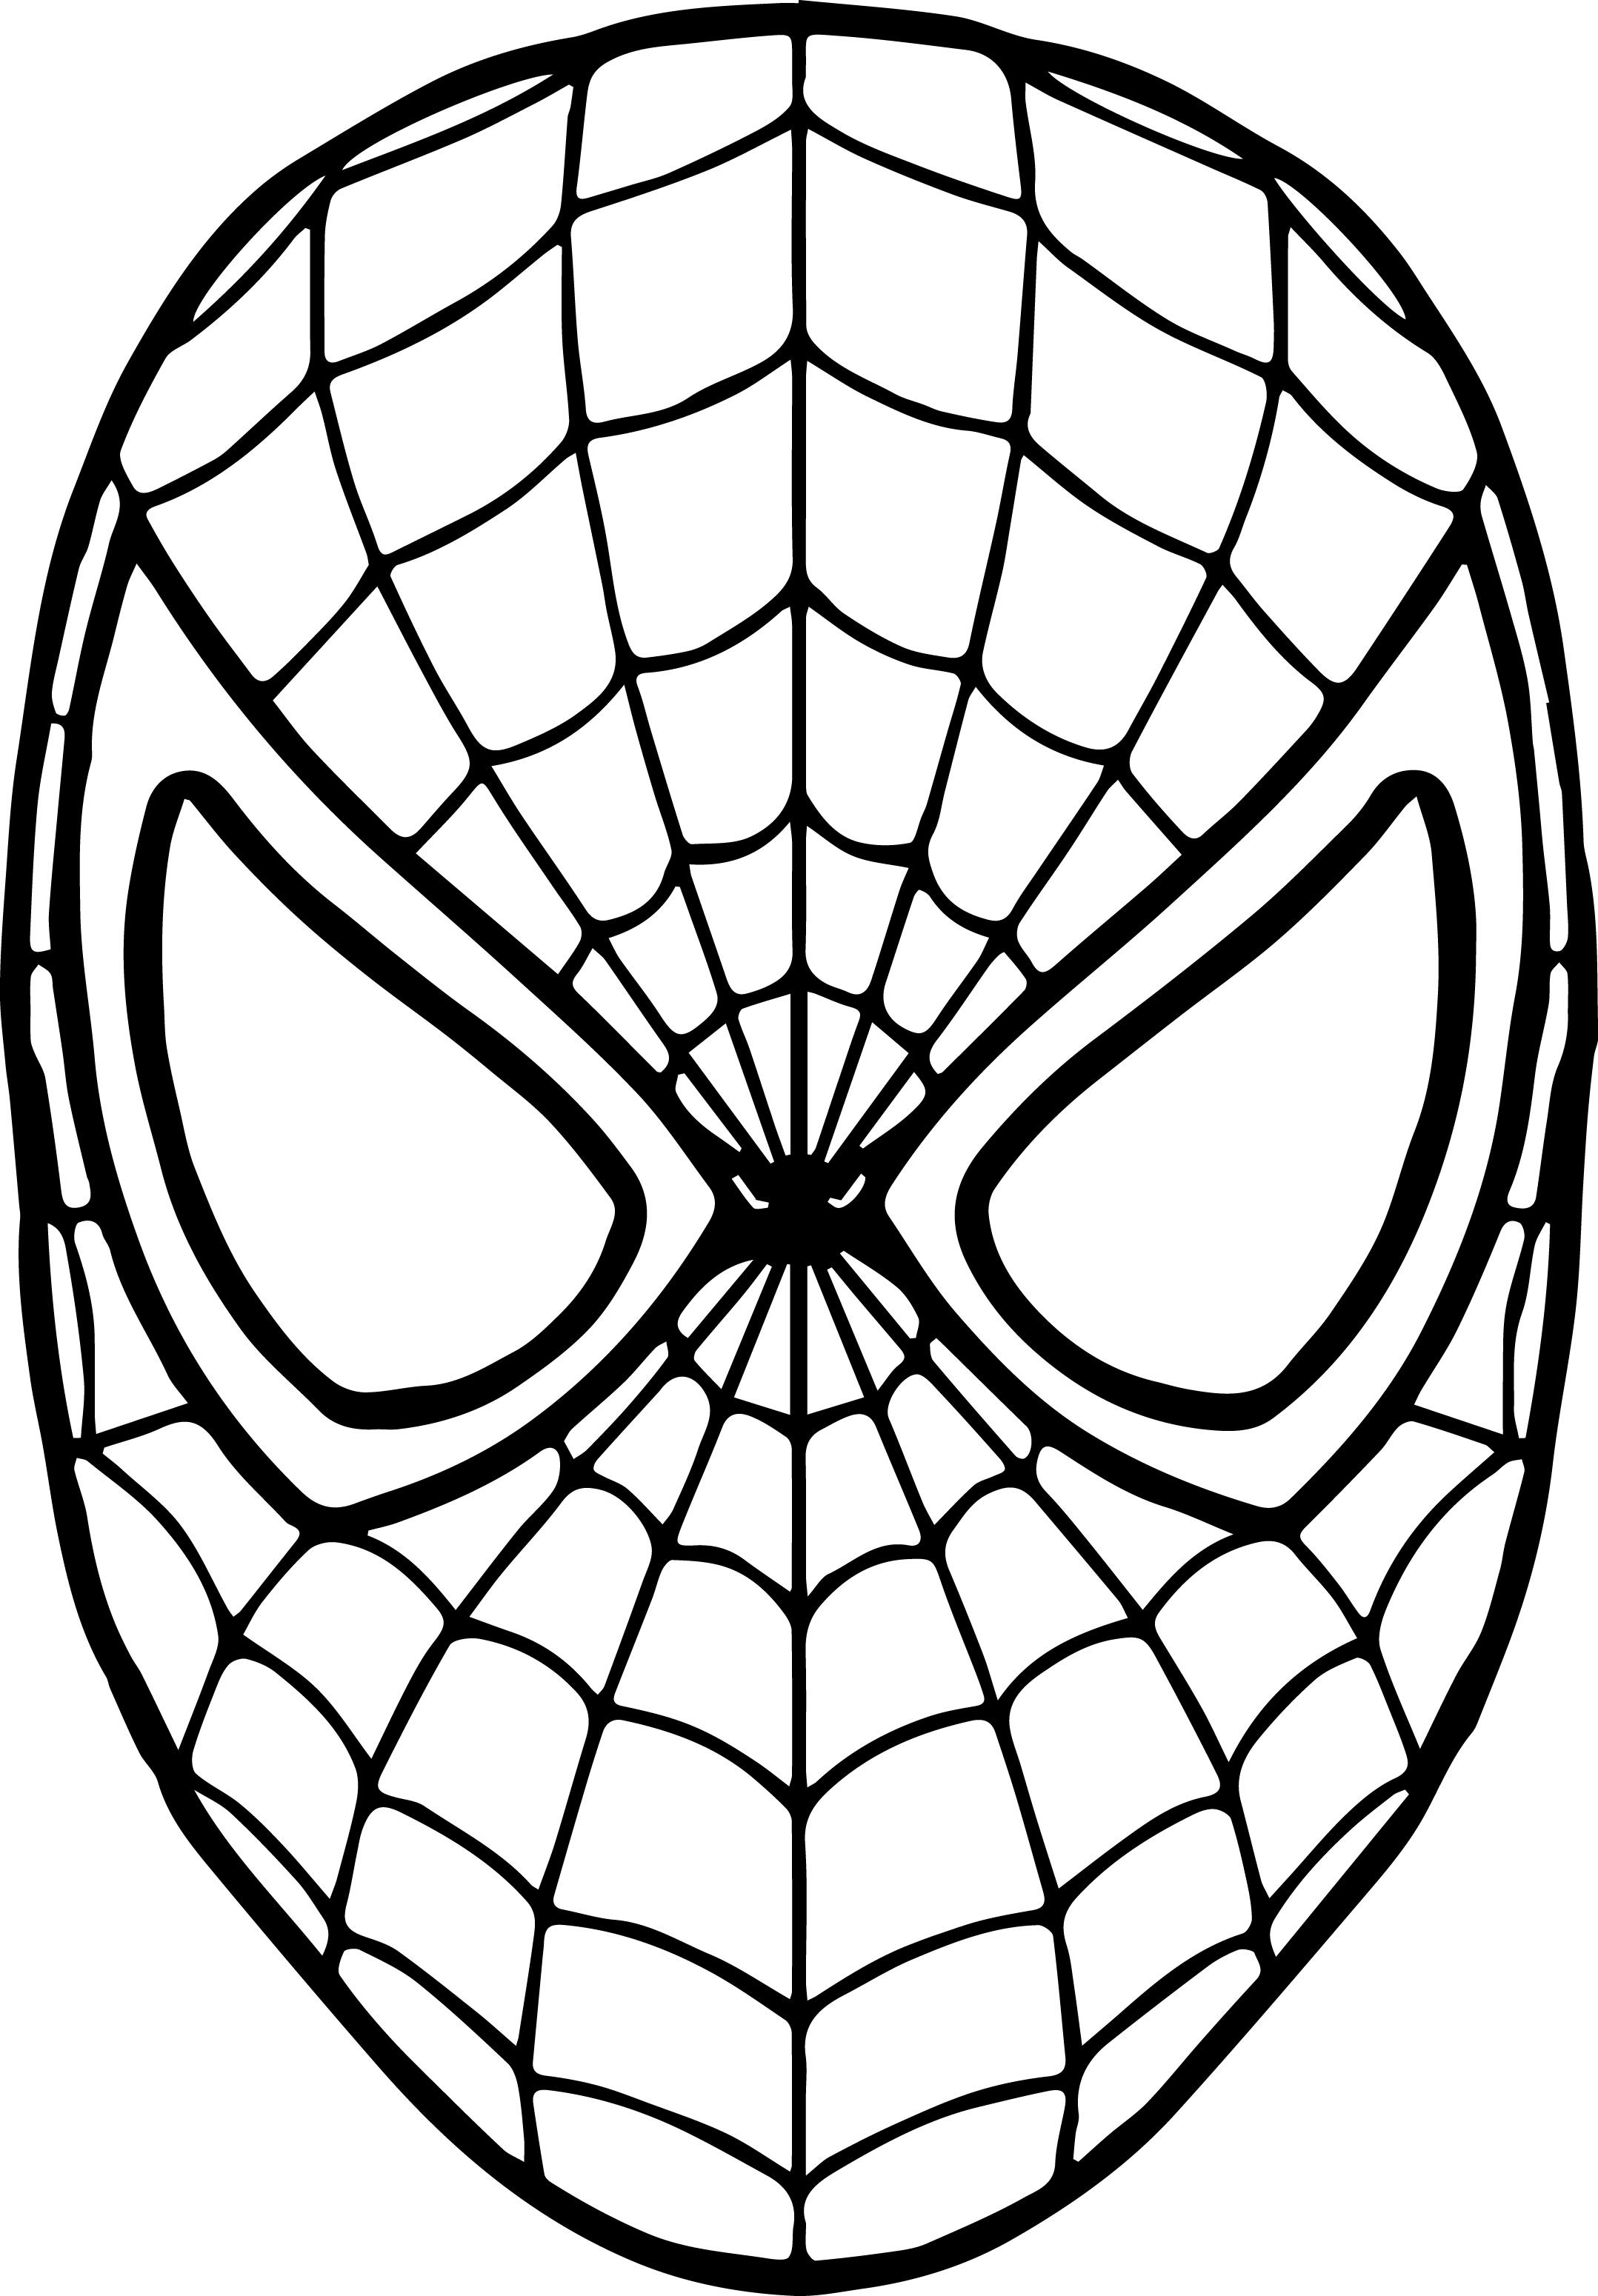 Rare image for spiderman printable